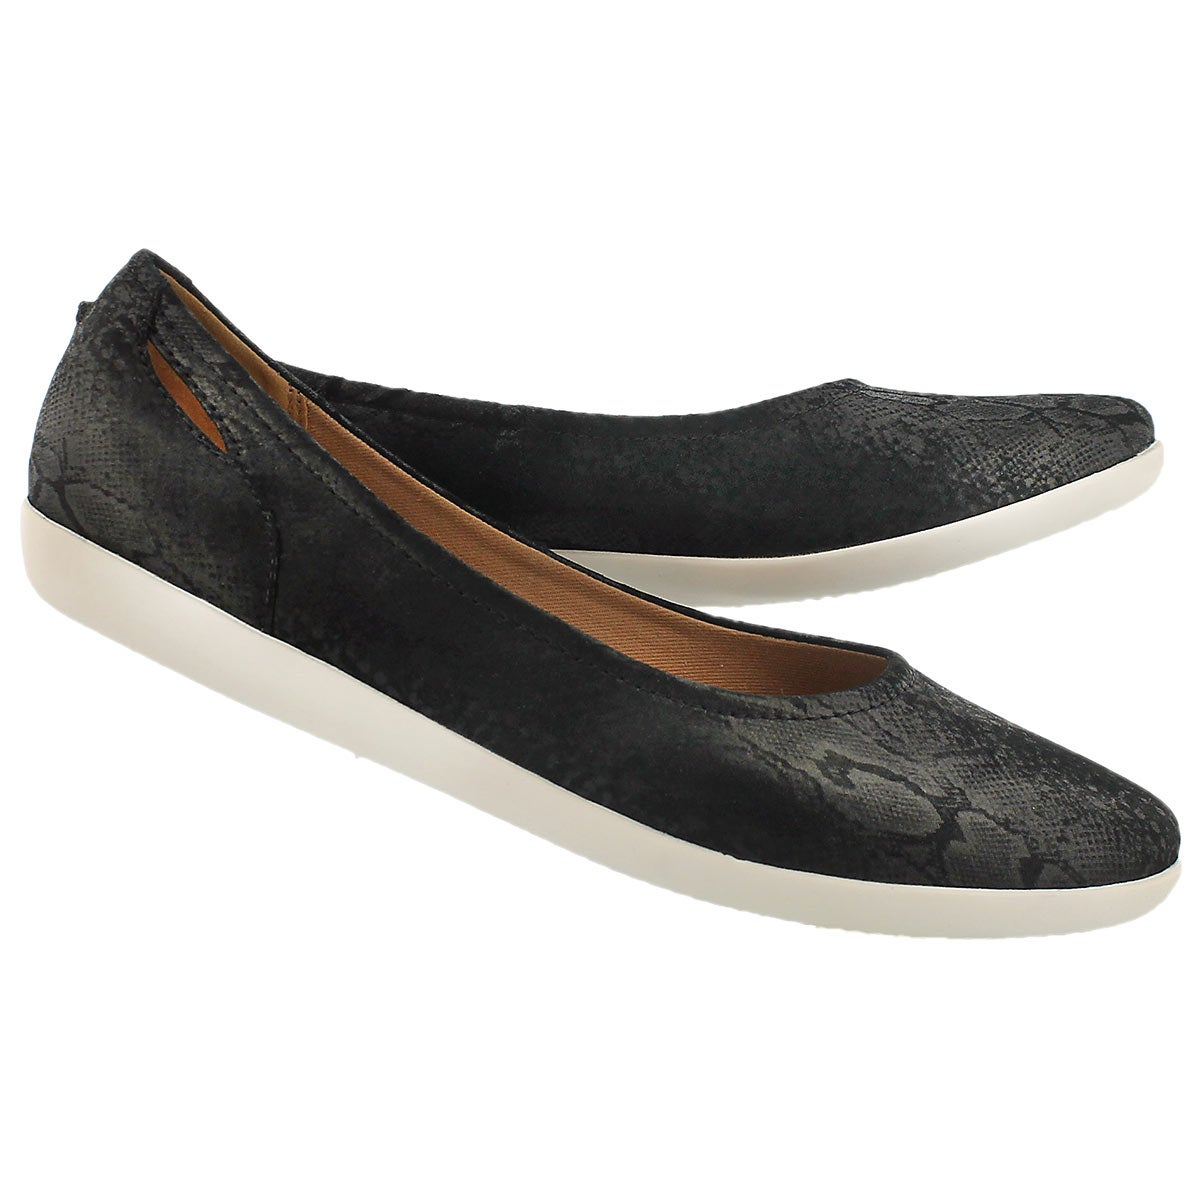 Lds Helina Alessia black suede flat